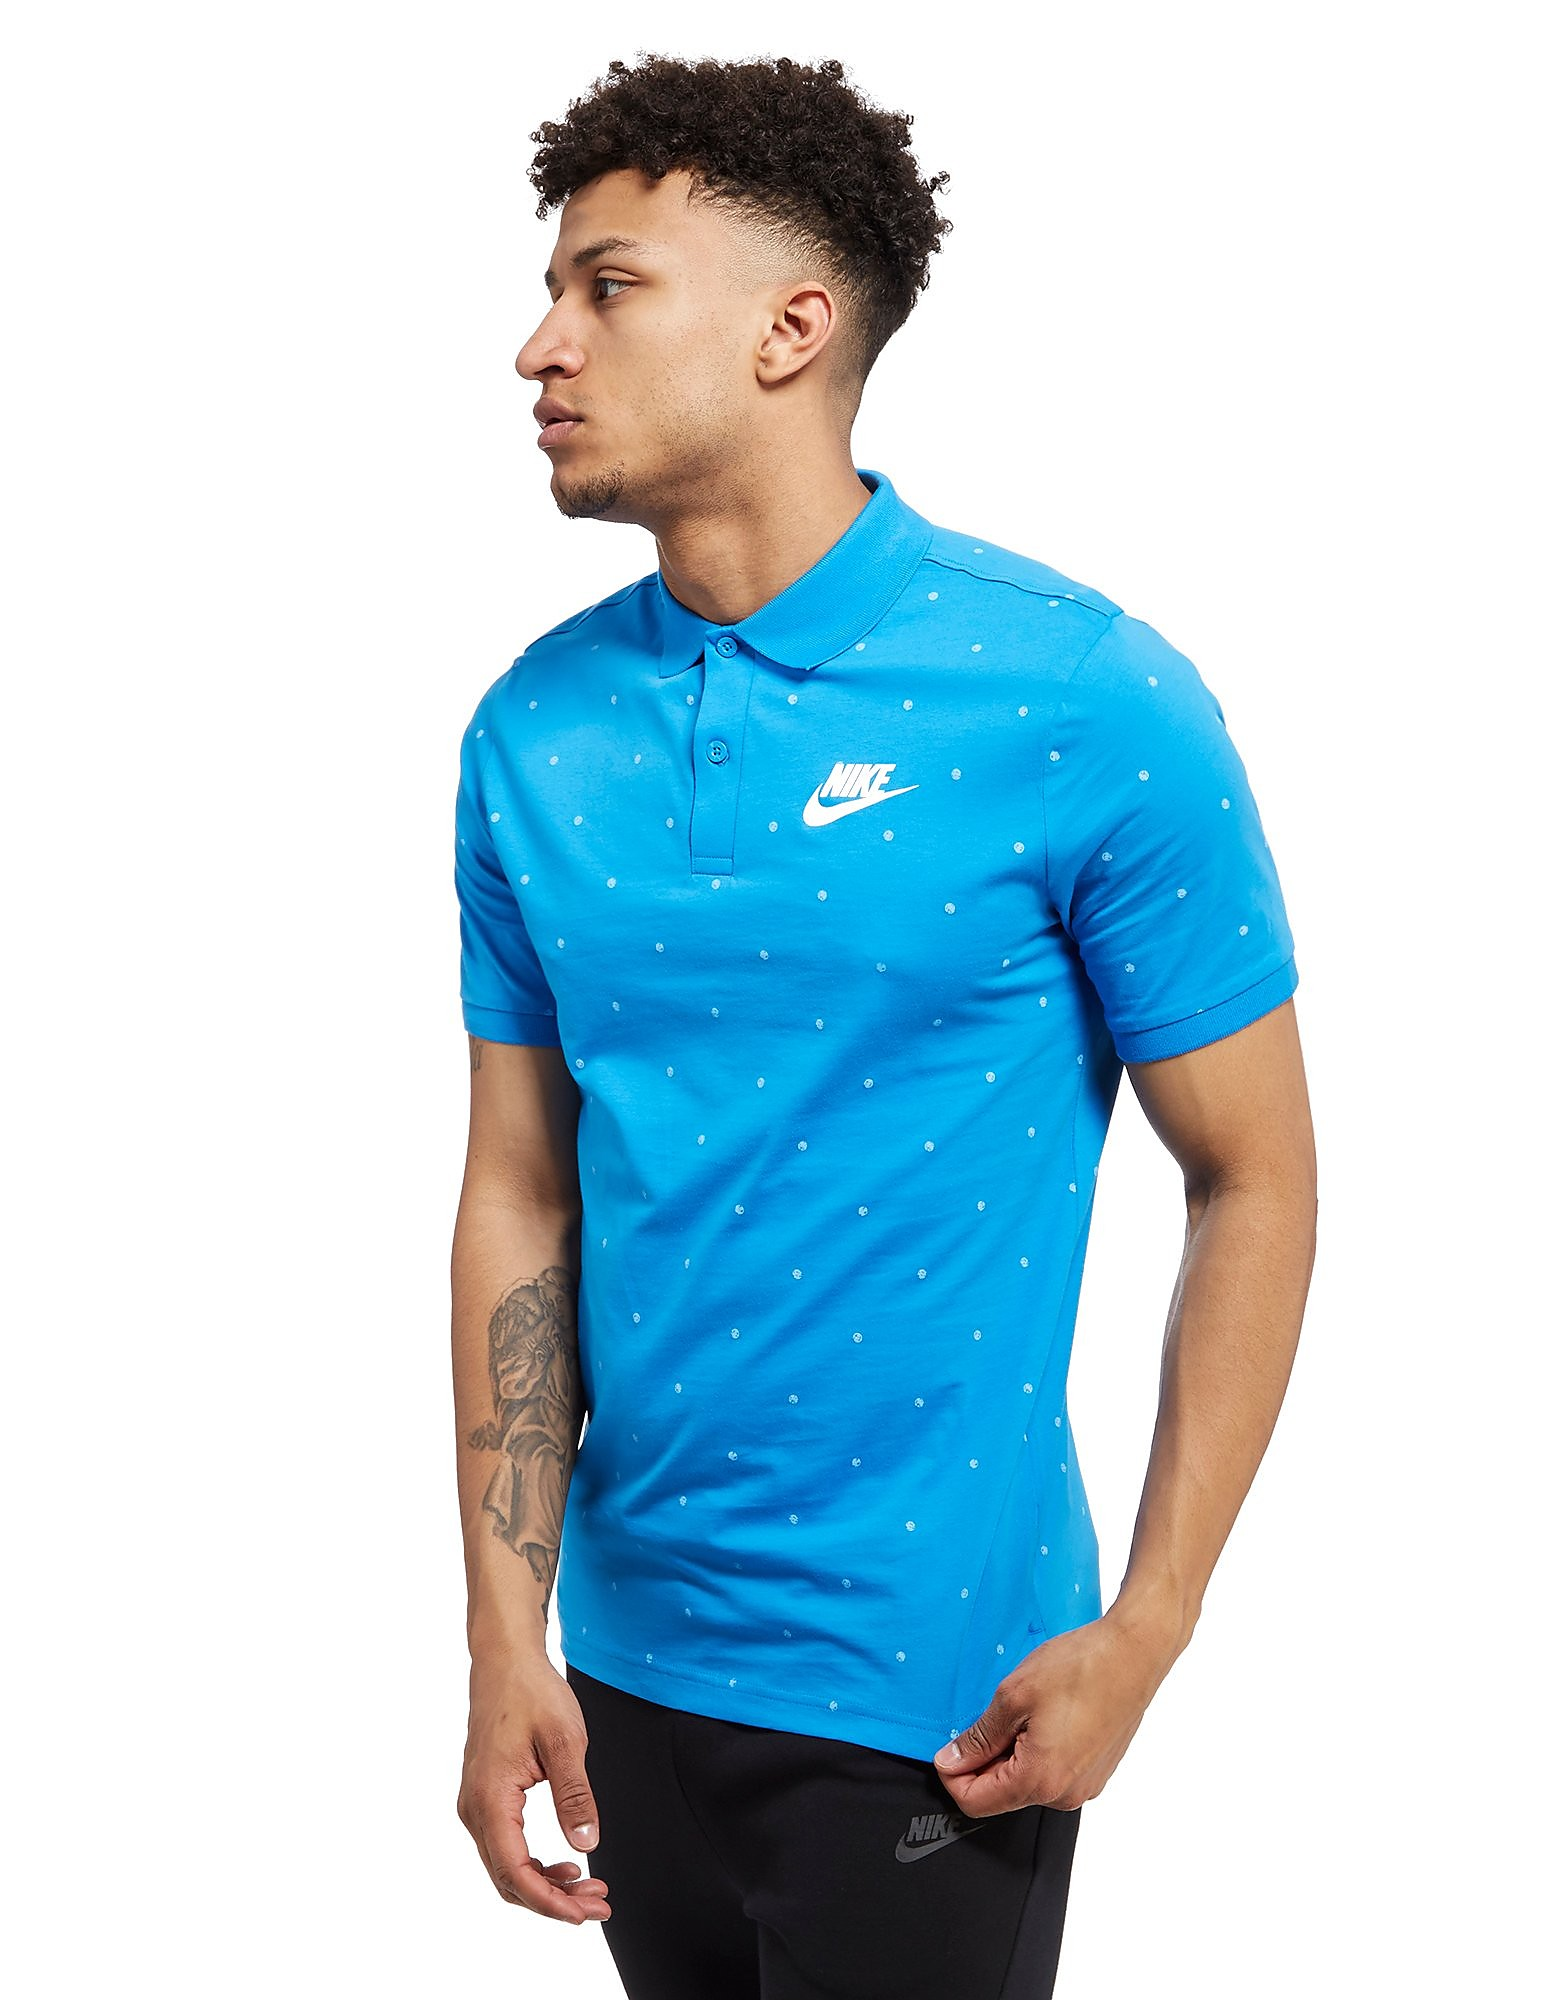 Nike Polka Dot Polo Shirt